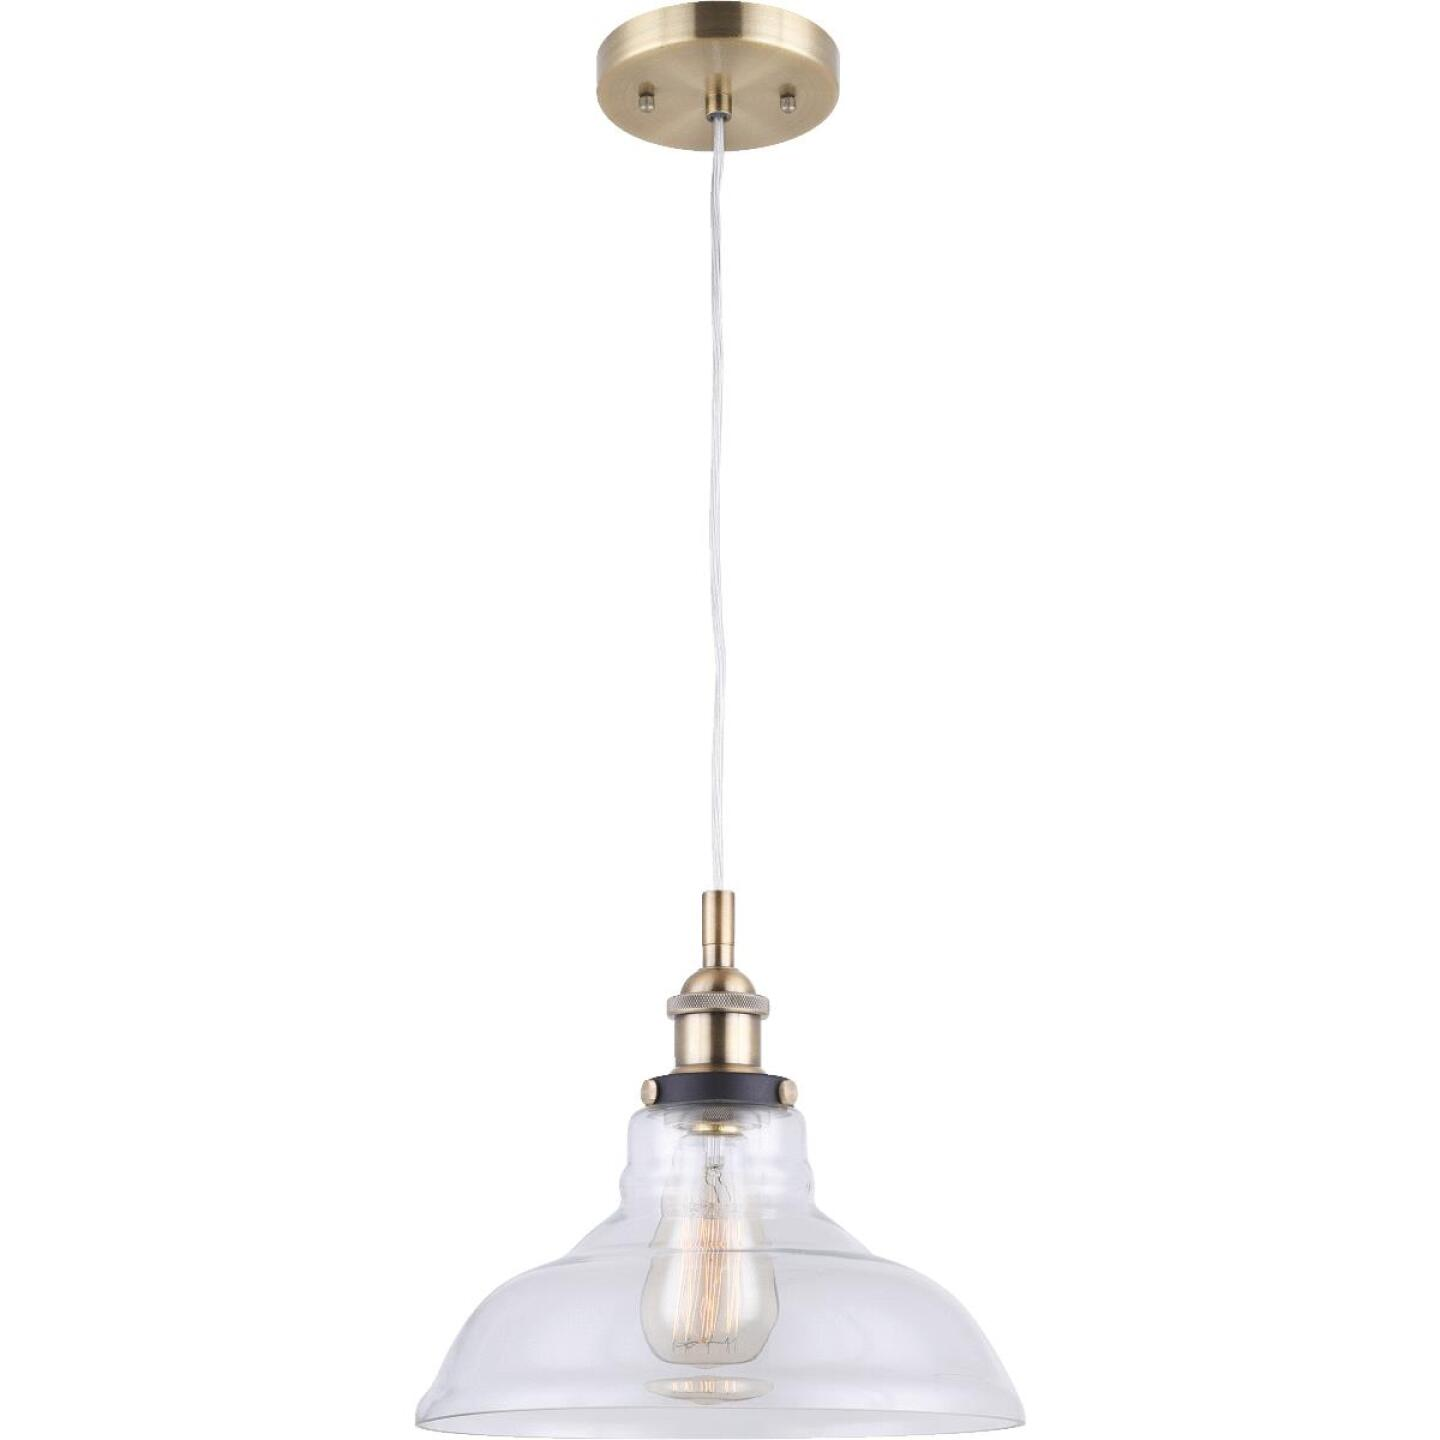 Home Impressions 1-Bulb Brass Incandescent Pendant Light Fixture Image 1